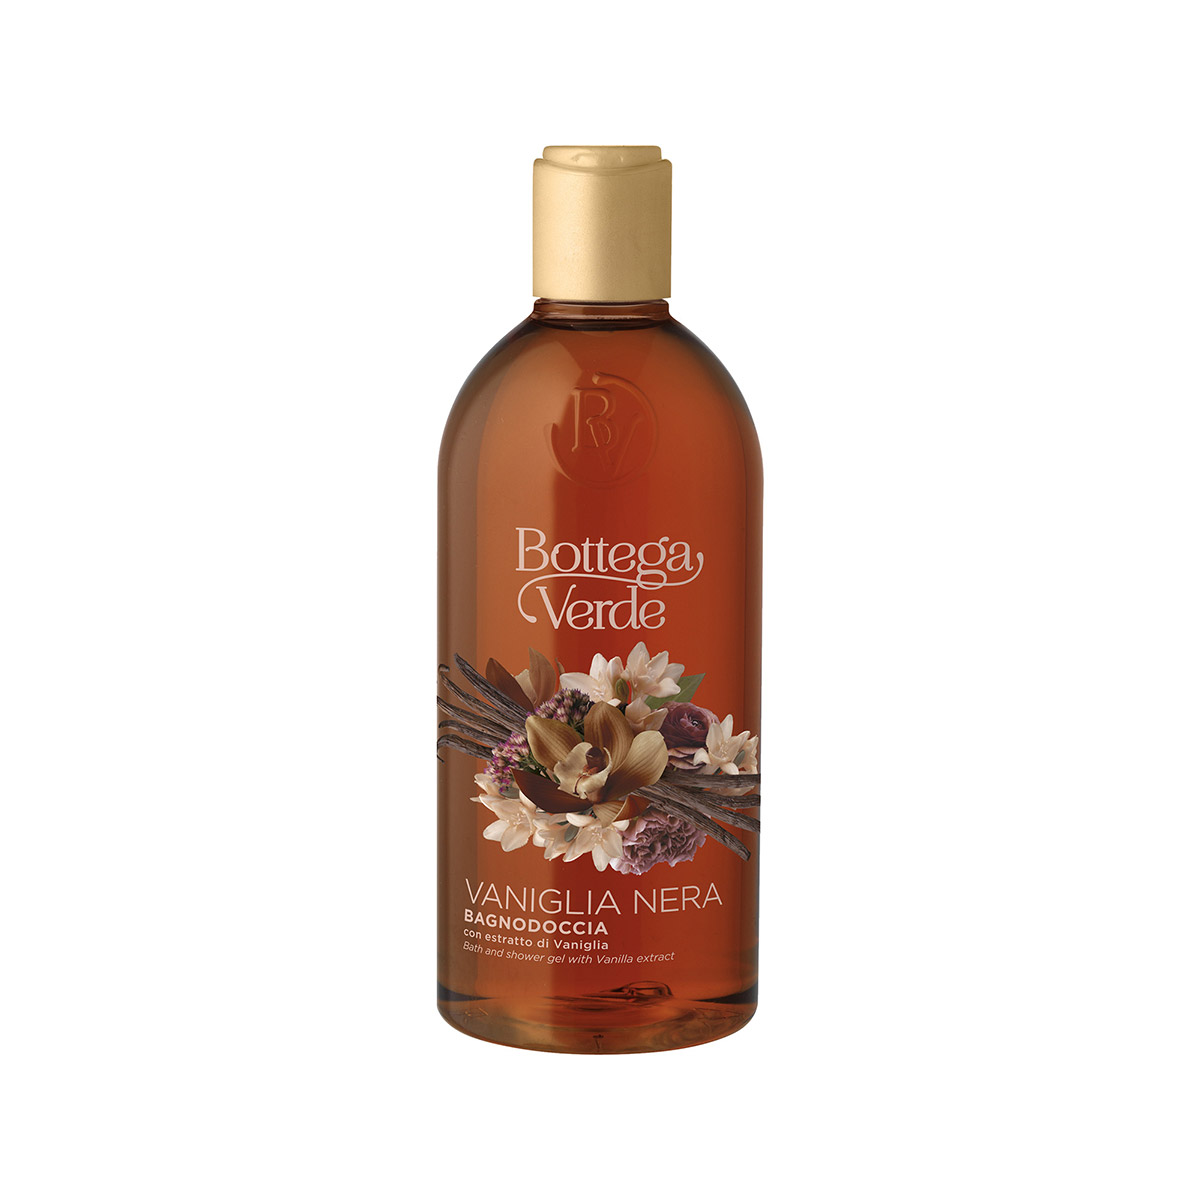 Vaniglia Nera - Bath and Shower Foam with Vanilla Extract (400 ml)